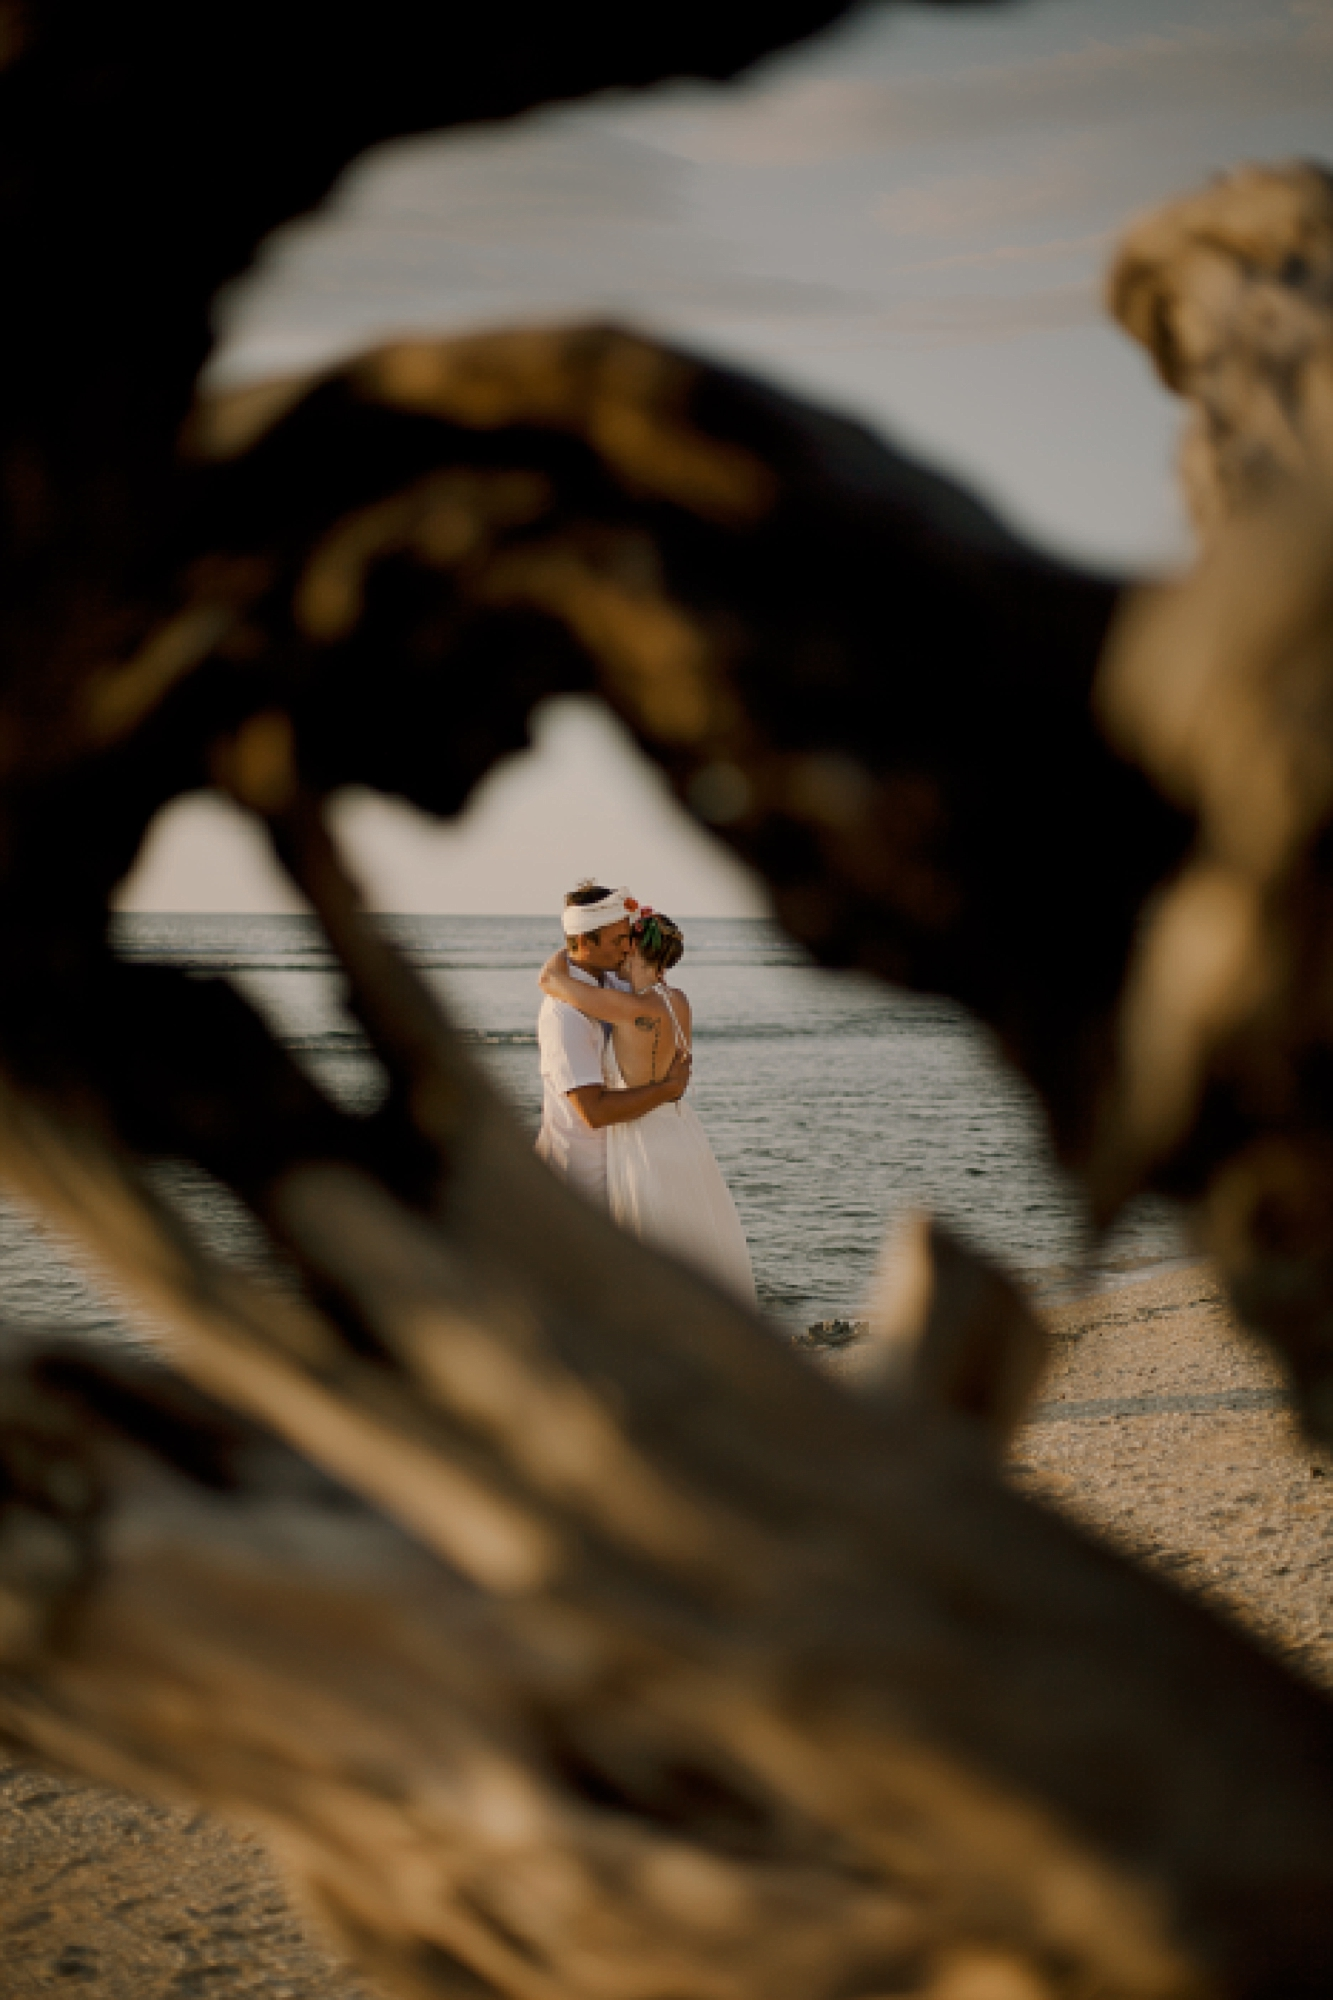 And-Two-Were-Tamed-intimate-adventurous-elopement-wedding-photography_0033.jpg